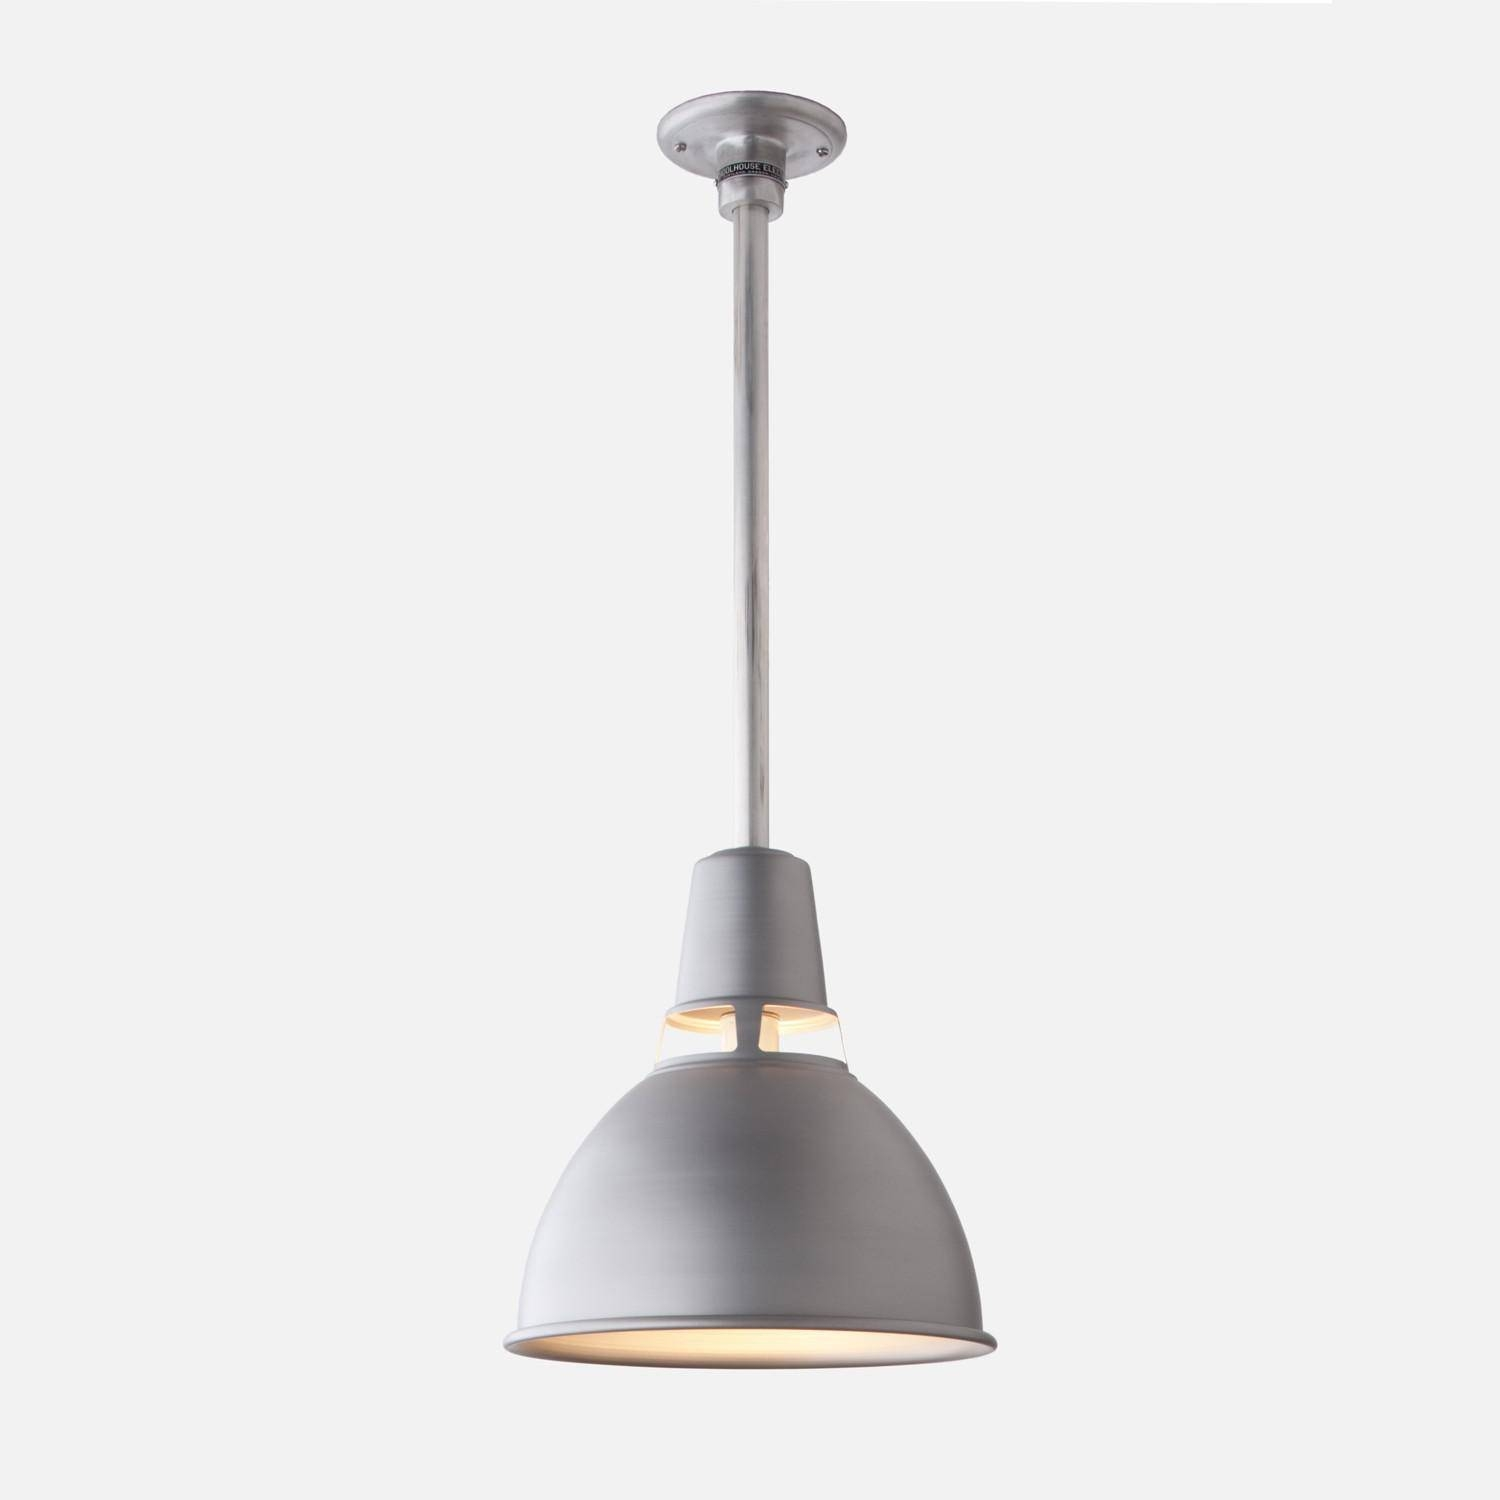 Awesome Commercial Pendant Light Fixtures 63 With Additional in Commercial Pendant Lights (Image 1 of 15)